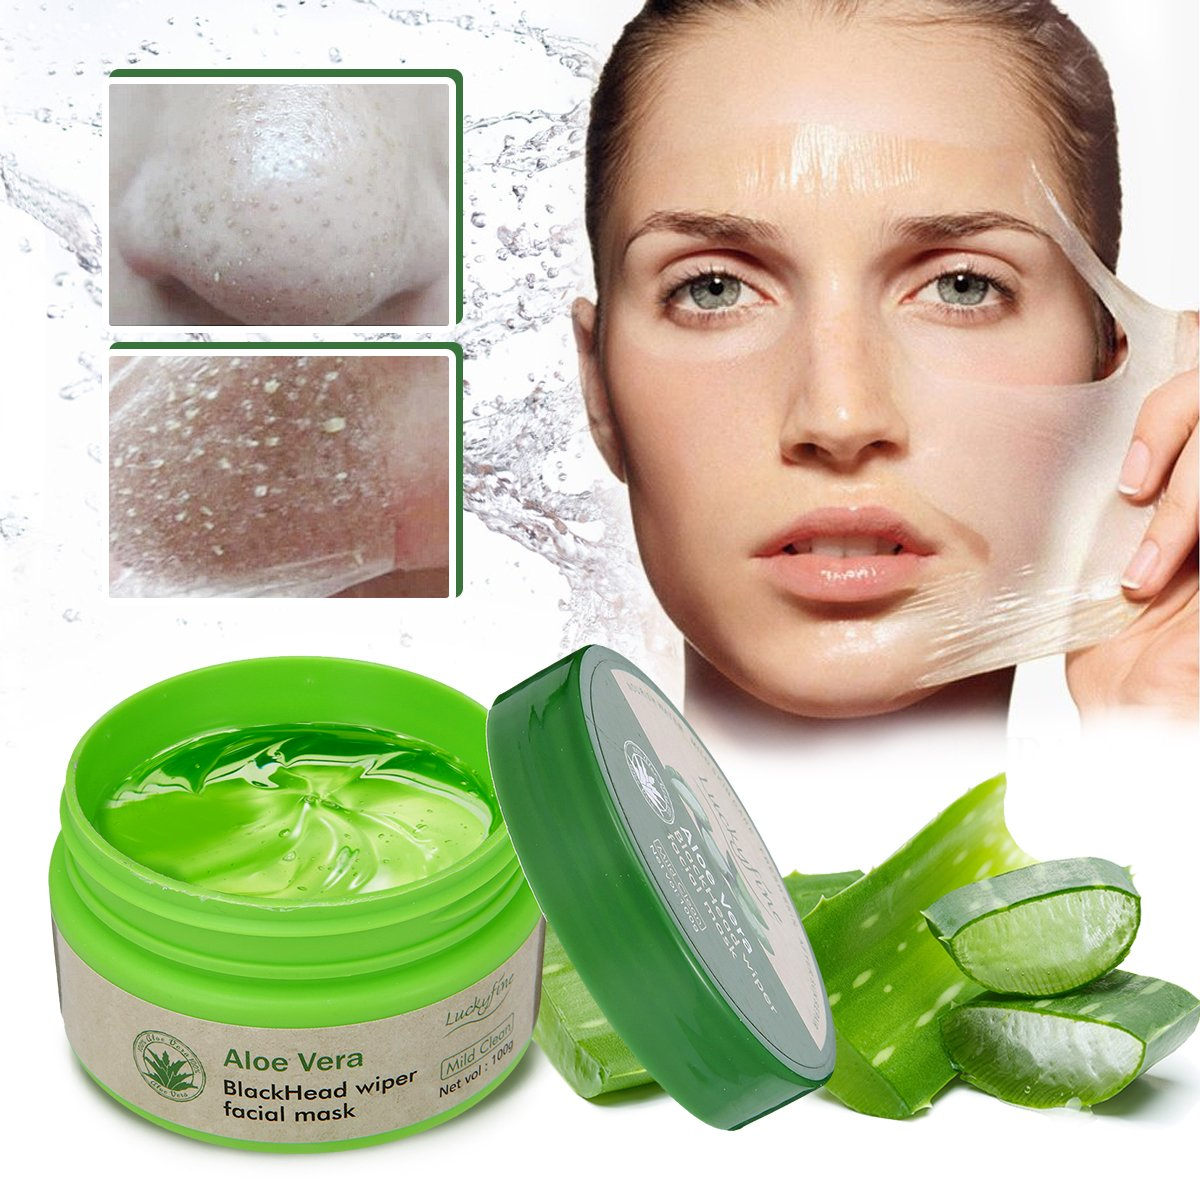 LuckyFine Aloe Vera Peel Off Facial Mask - Blackhead Removal - Purifying Deep Cleansing - Acne